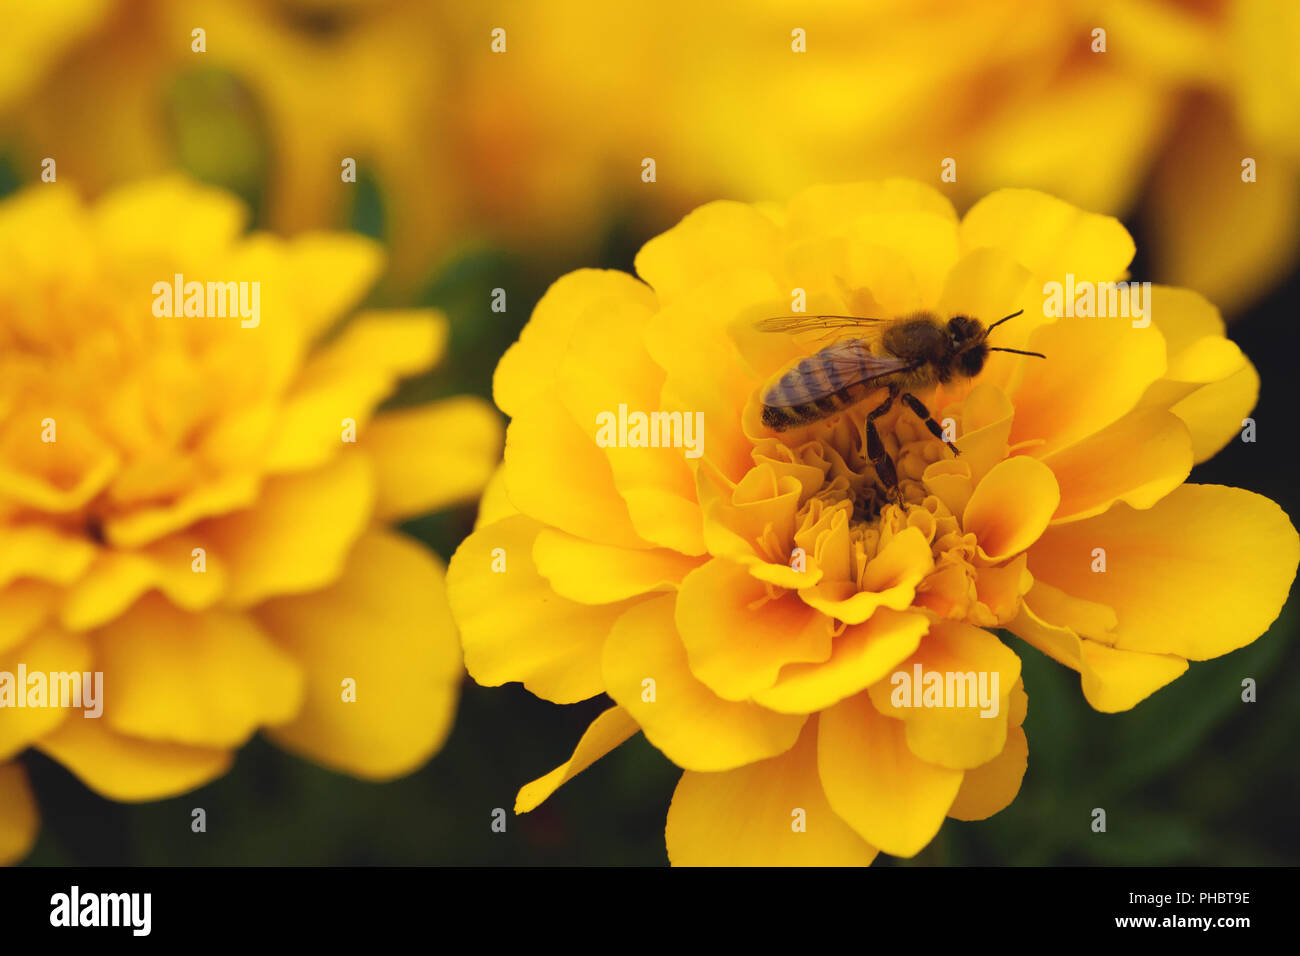 tagetes, marigold, symbol of health and longevity, beautiful and bright yellow plants close-up, a bee on a flower, grow in nature - Stock Image